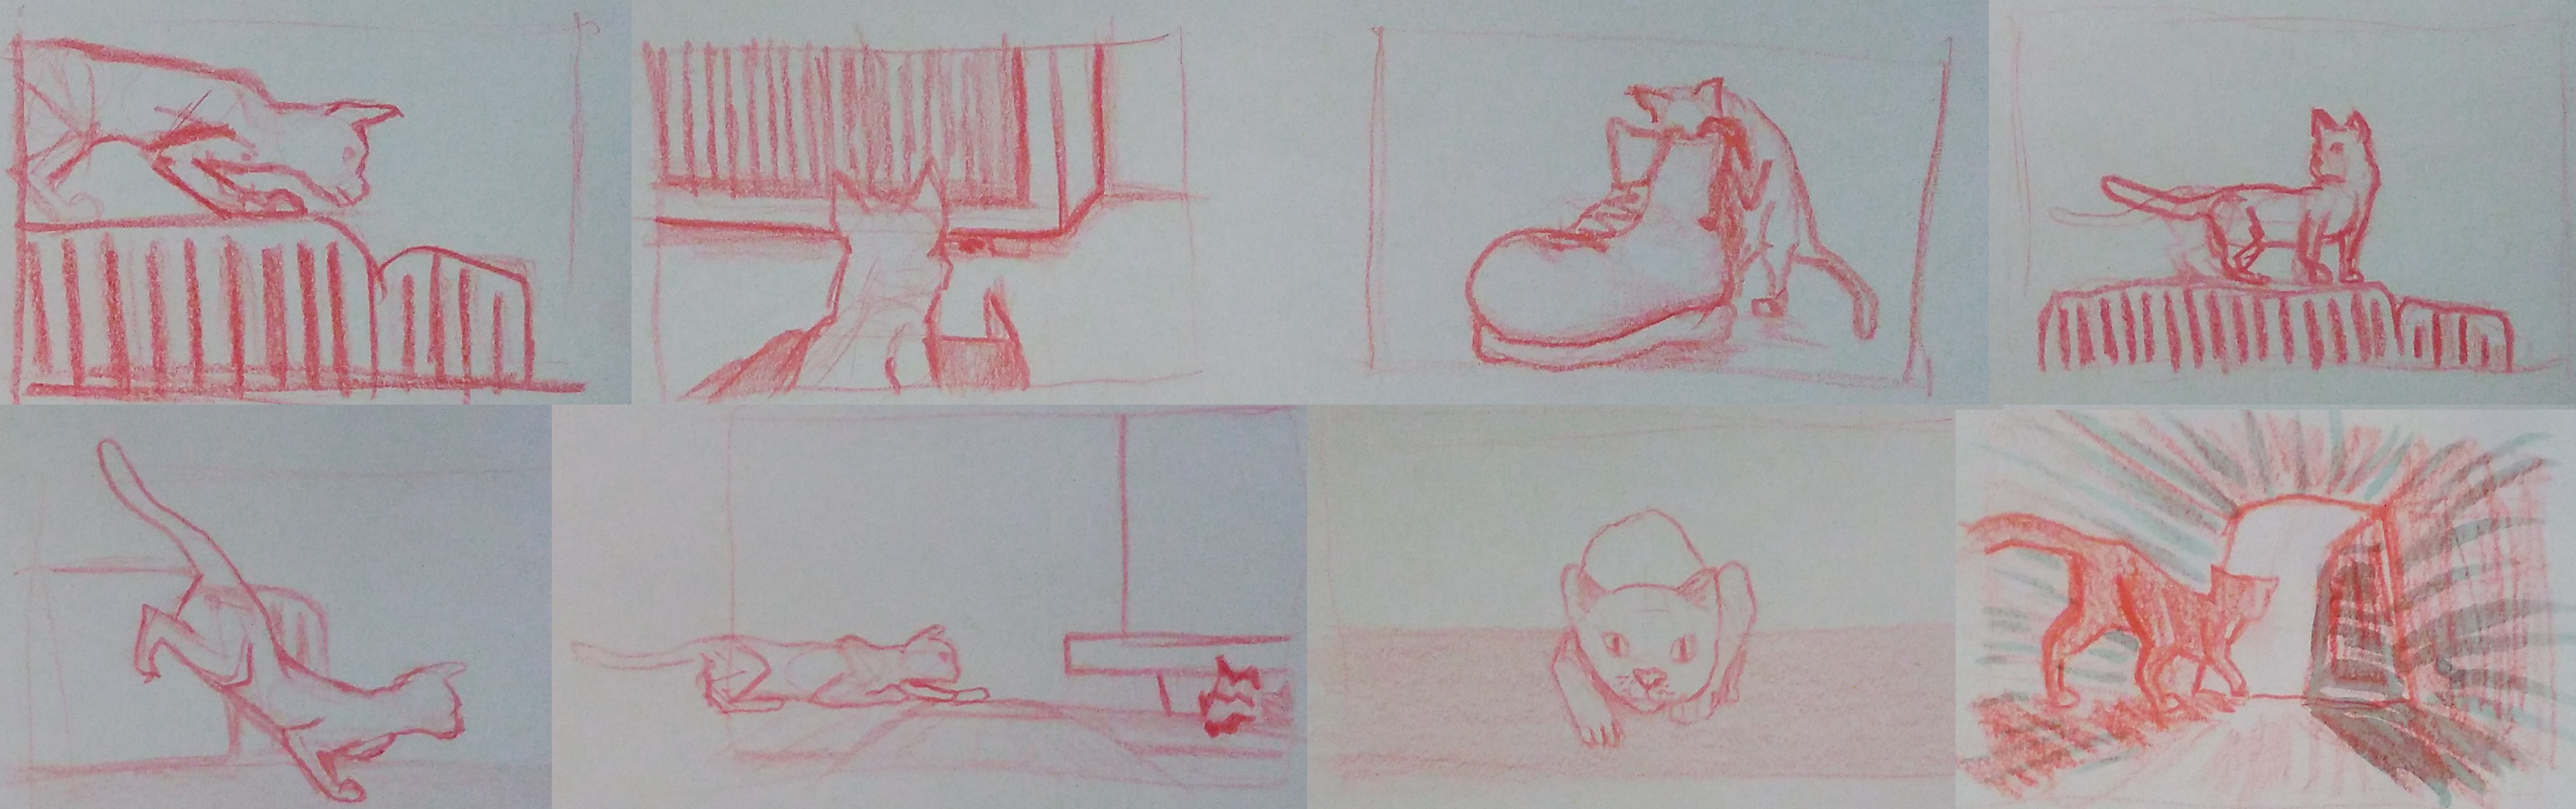 some vignettes before storyboarding